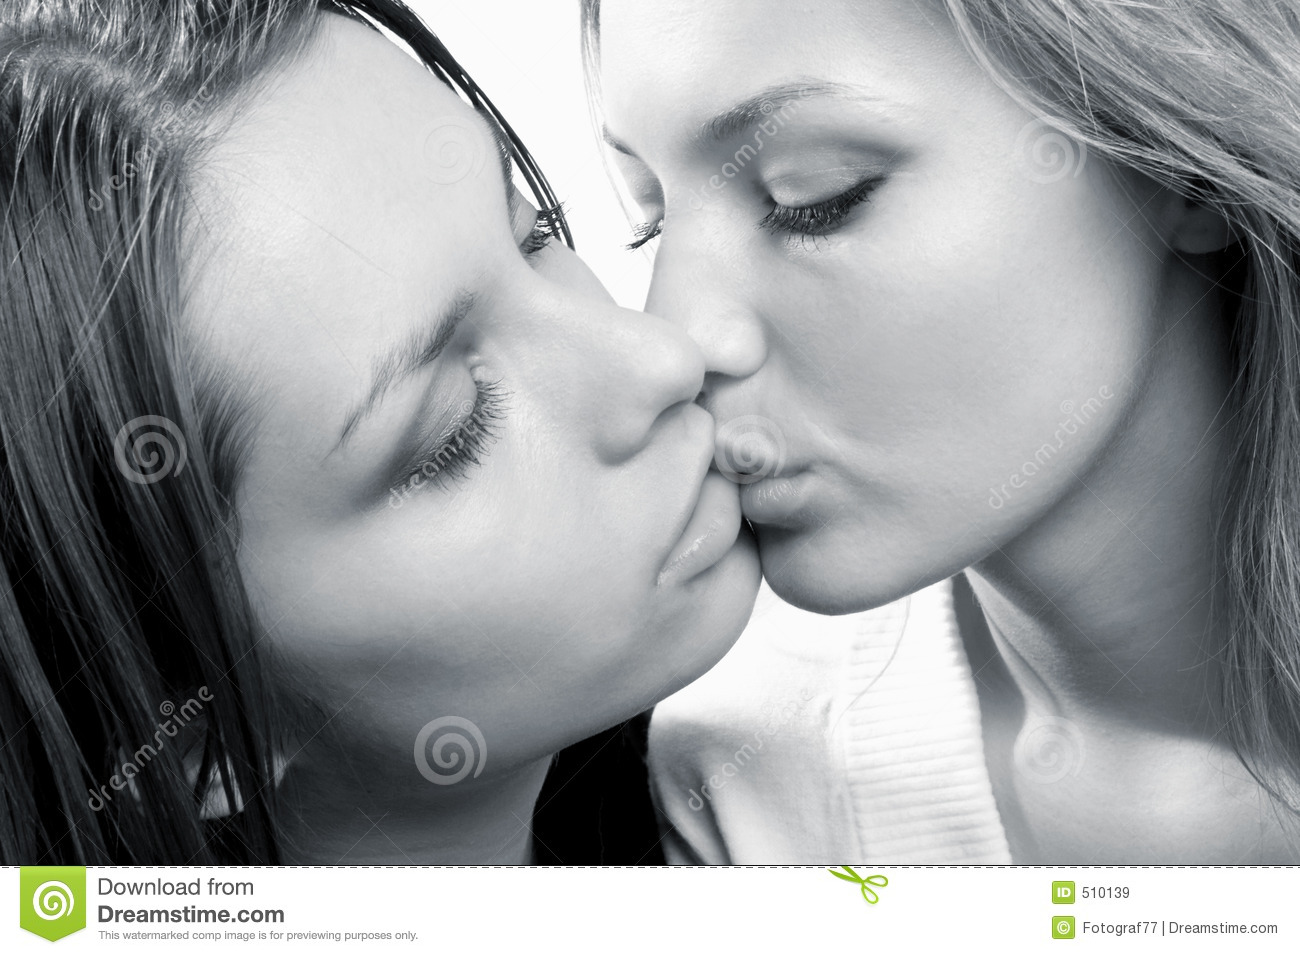 lesbians making out Beautiful